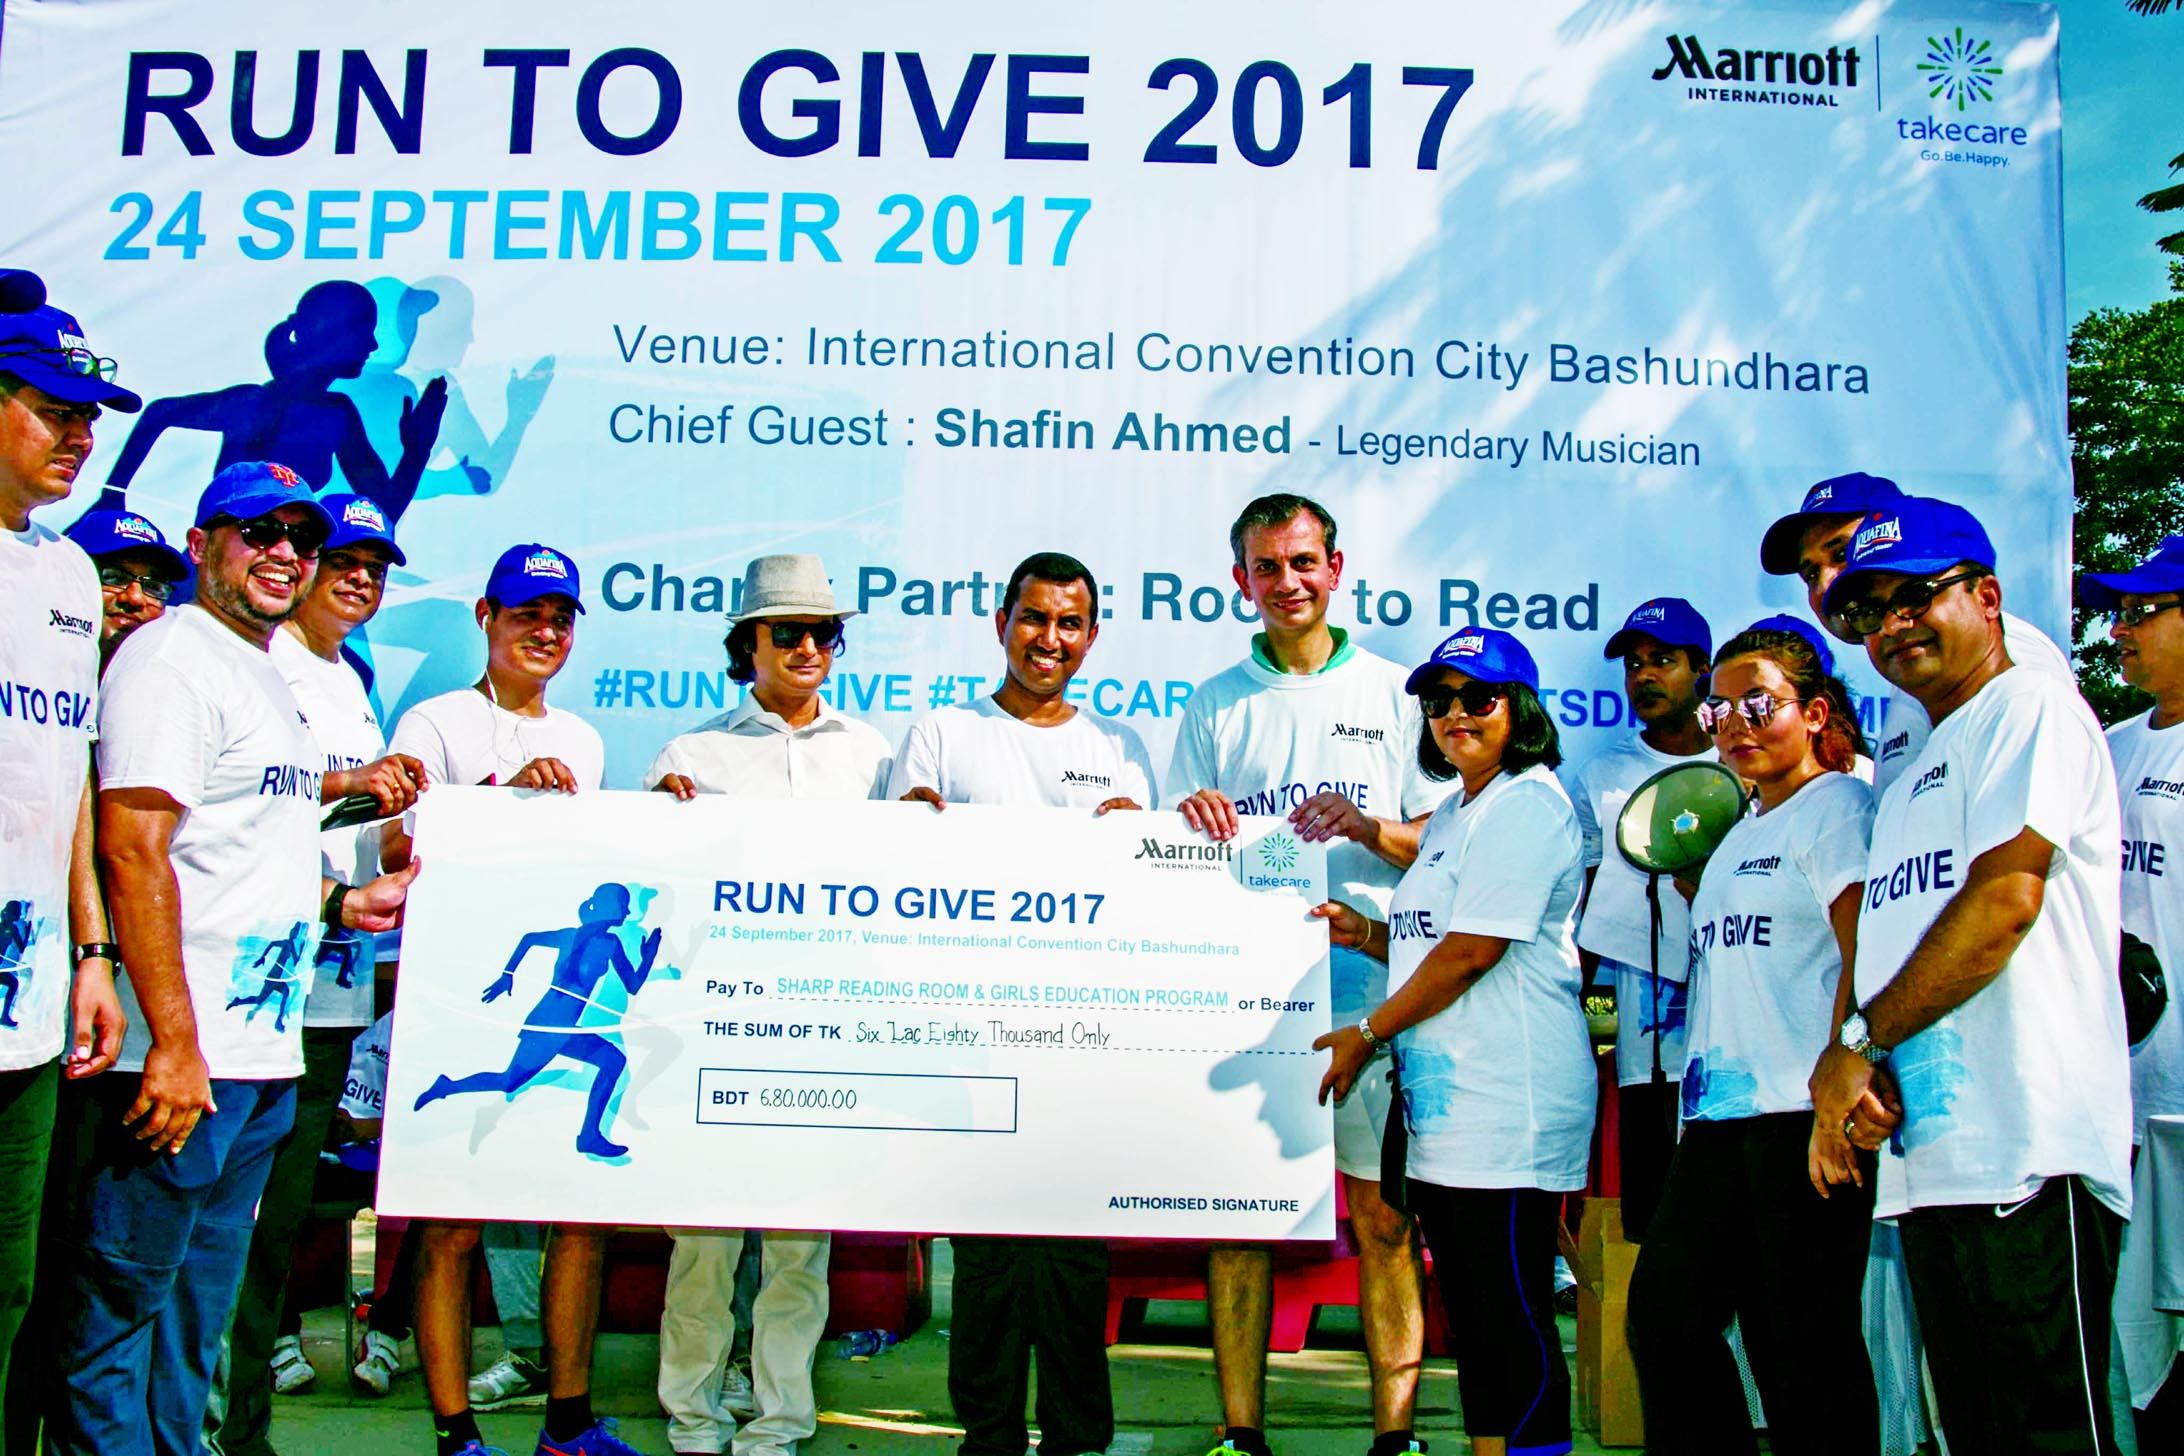 Musician Shafin Ahmed takes part for the fund raising marathon event 'Run to Give' a charity initiative for the children in Dhaka comprised of 10 km starting from International Convention City Bashundhara to Kanchon Bridge on Sunday. Le Méridien Dhaka and Four Points by Sheraton Dhaka jointly hosts the Marriott Internationals' event.